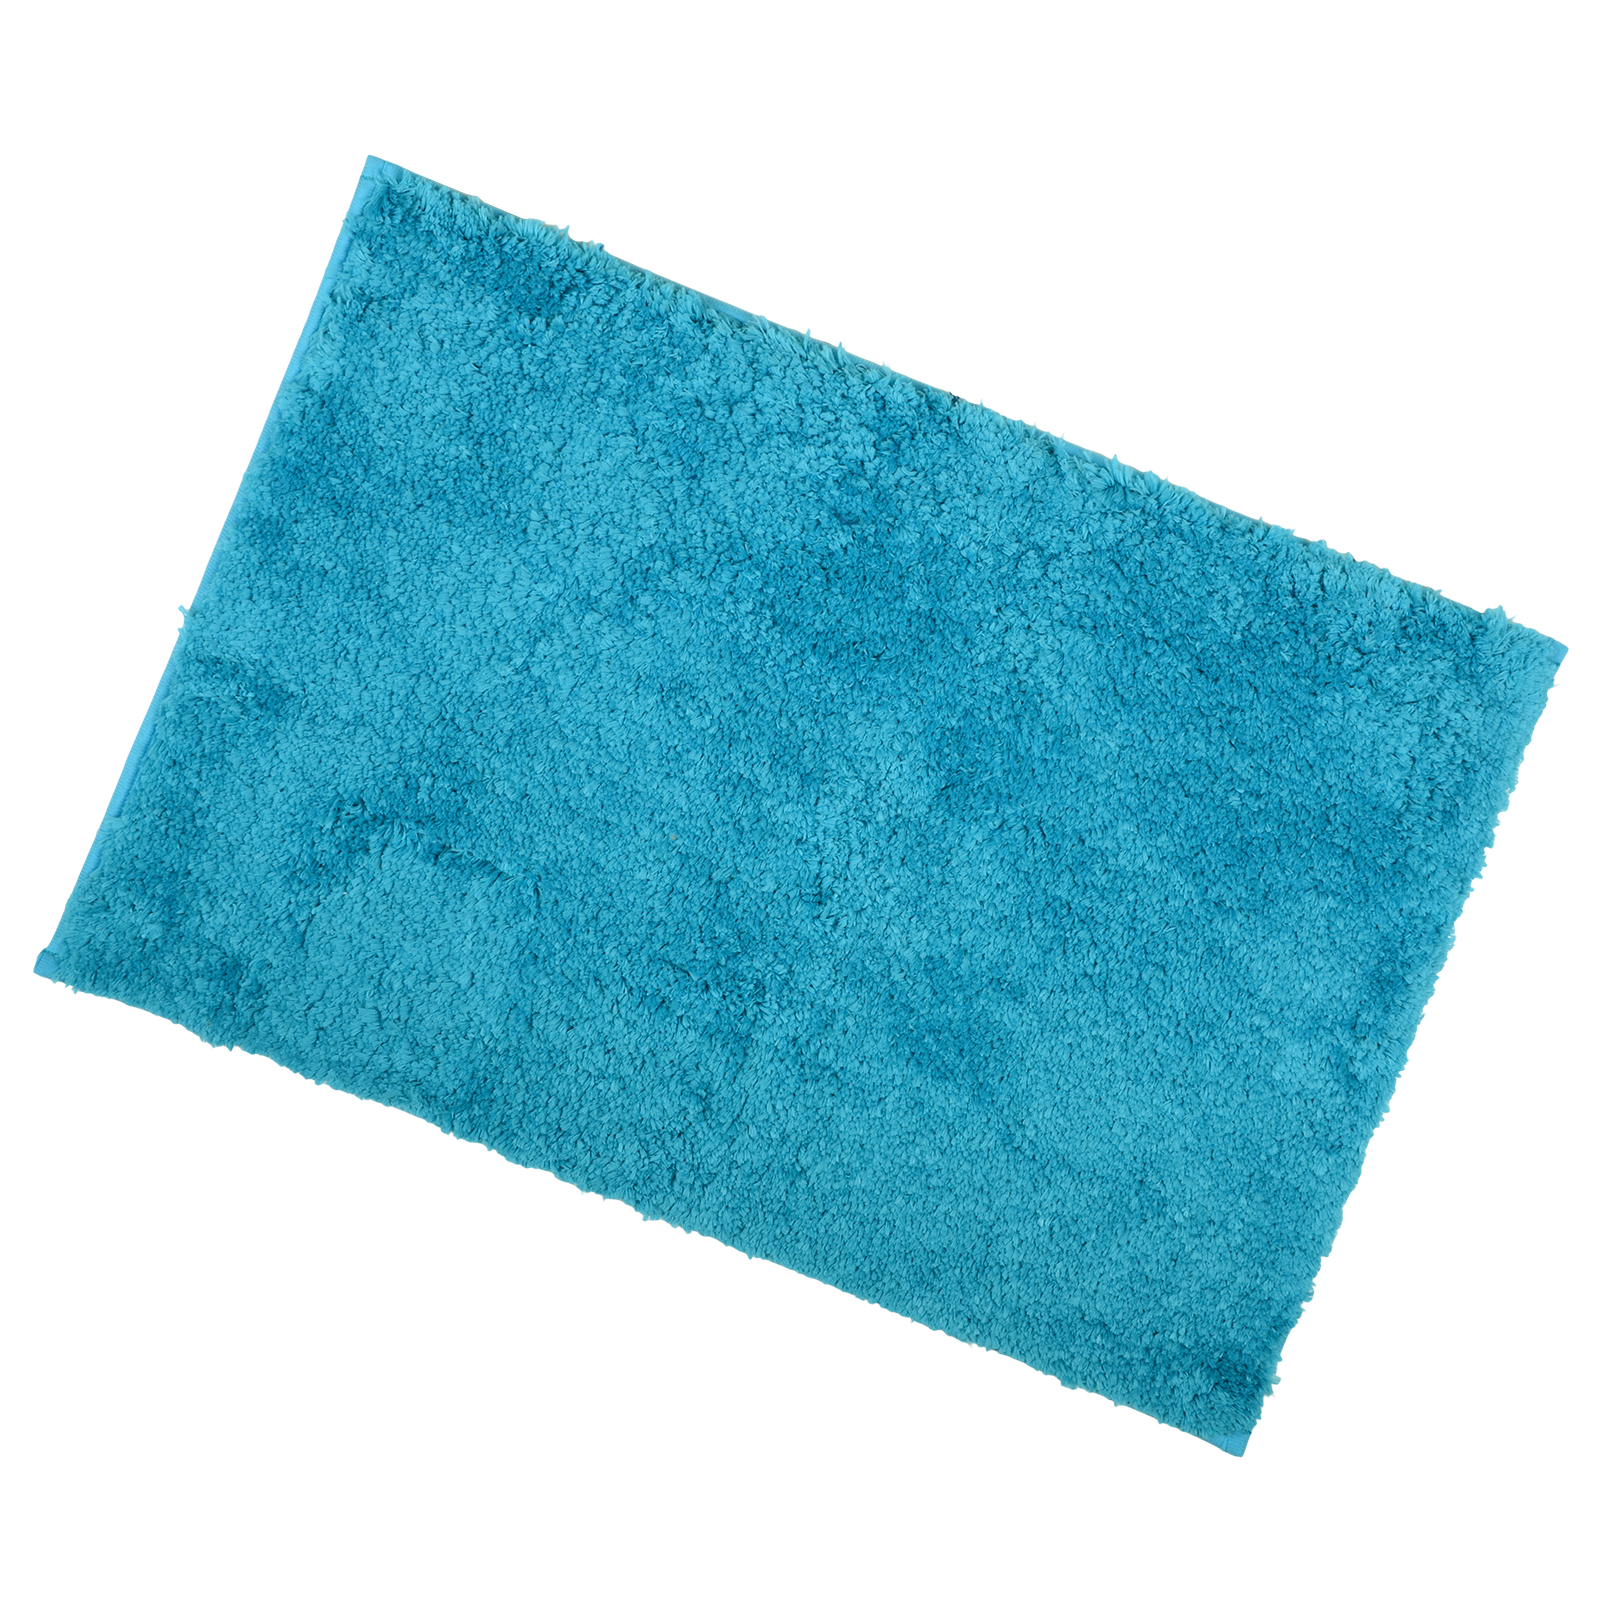 luxury microfibre tufted bath mat with anti slip backing bathroom luxury microfibre tufted bath mat with anti slip